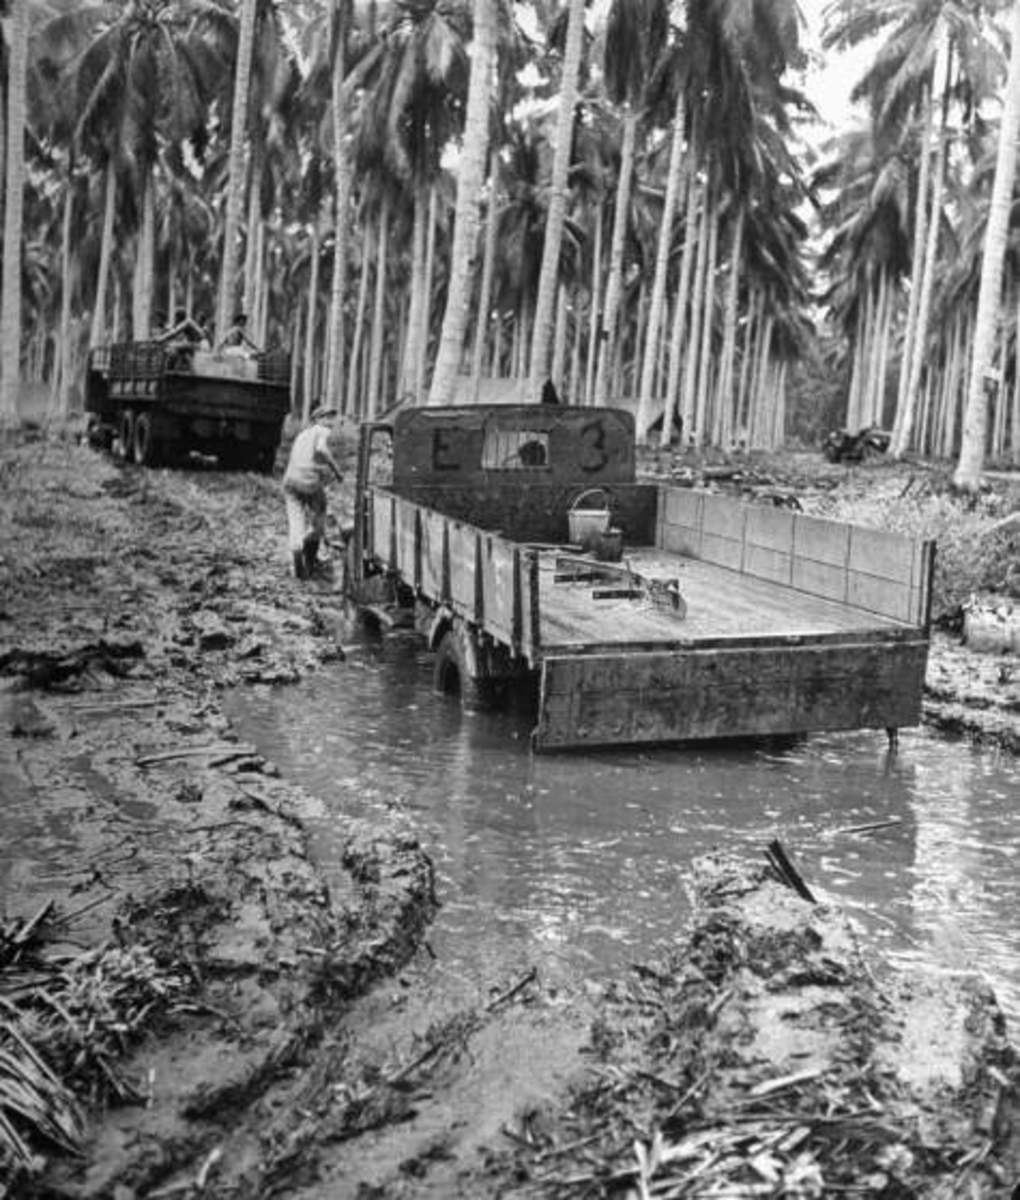 The heavy rains on Guadalcanal were a breeding ground for malaria.